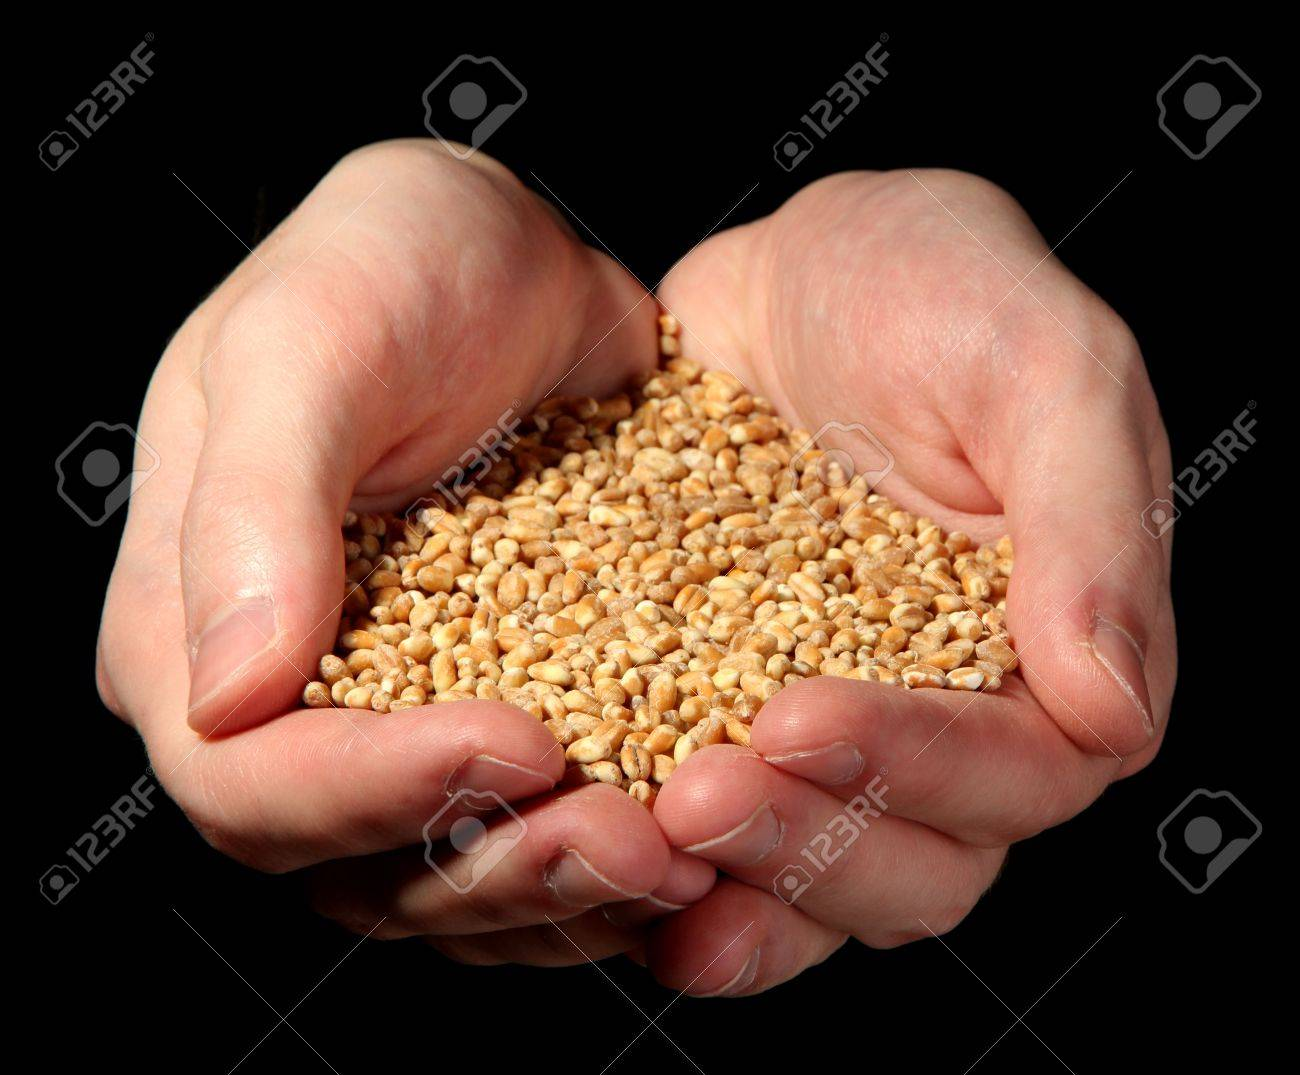 man hands with grain, on black background Stock Photo - 17209297